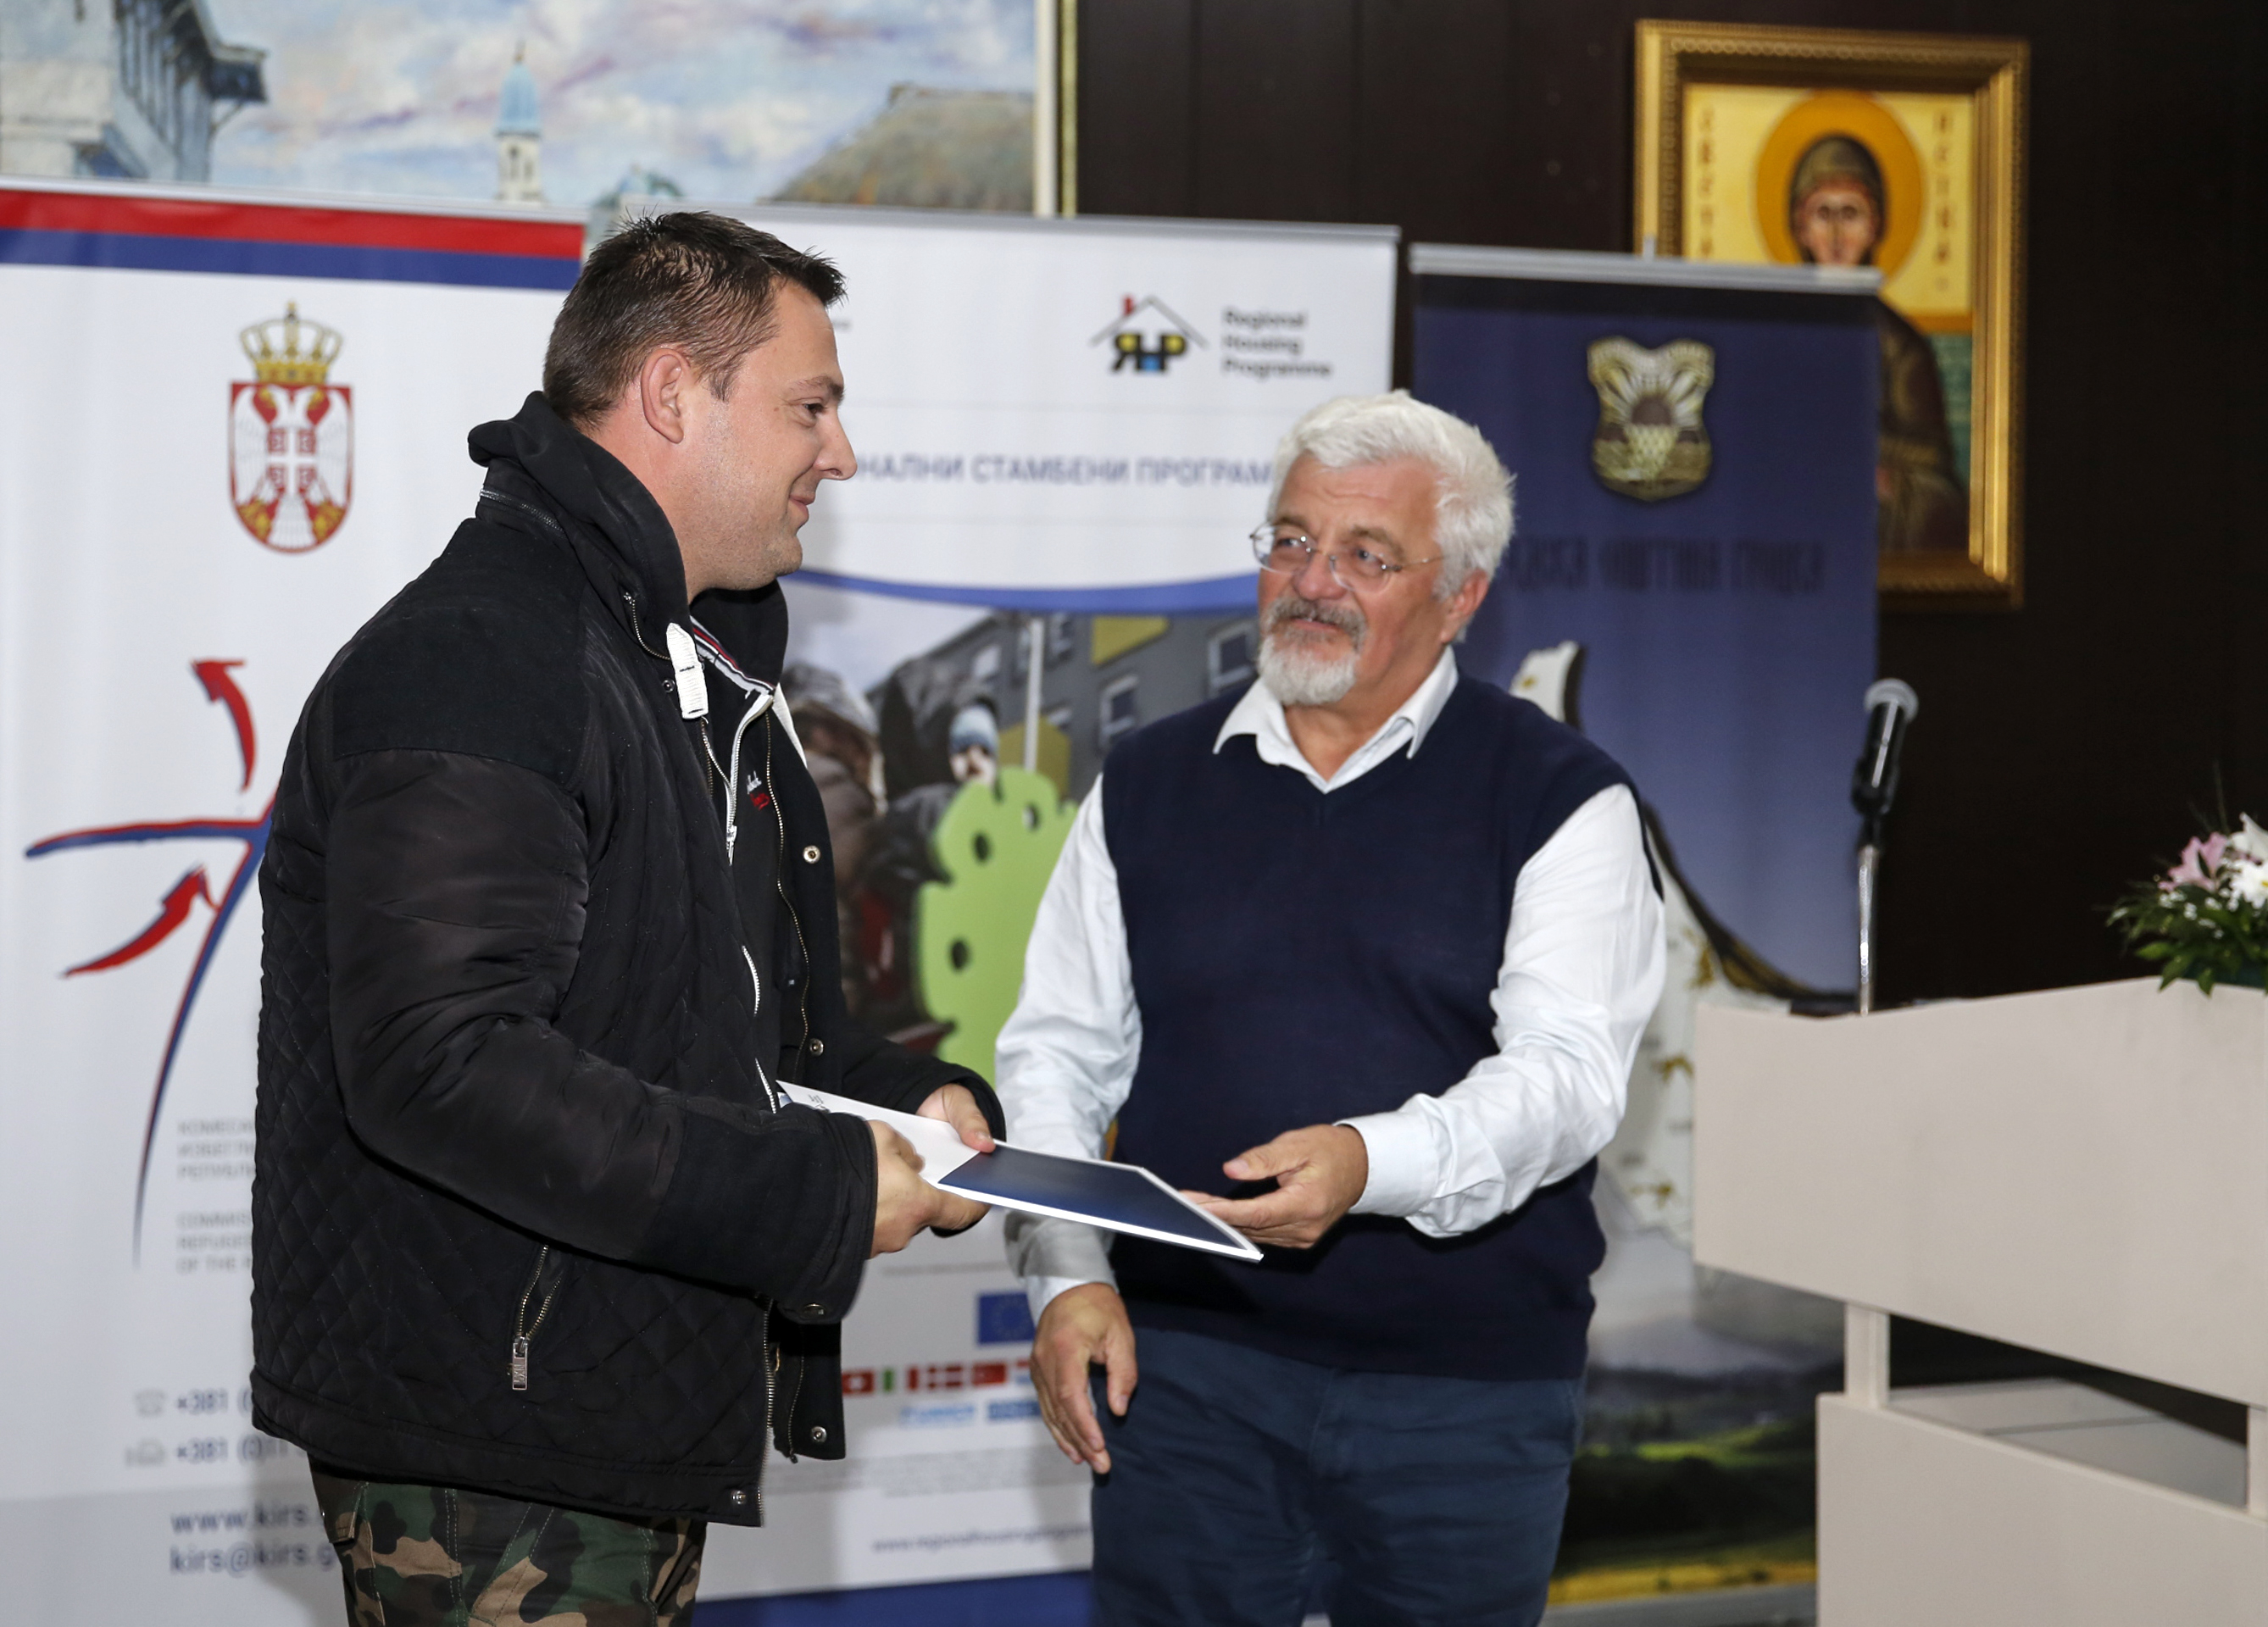 Contracts on awarding 15 packages of construction material officially delivered in Grocka to rеfugee families from Bosnia and Herzegovina and the Republic of Croatia